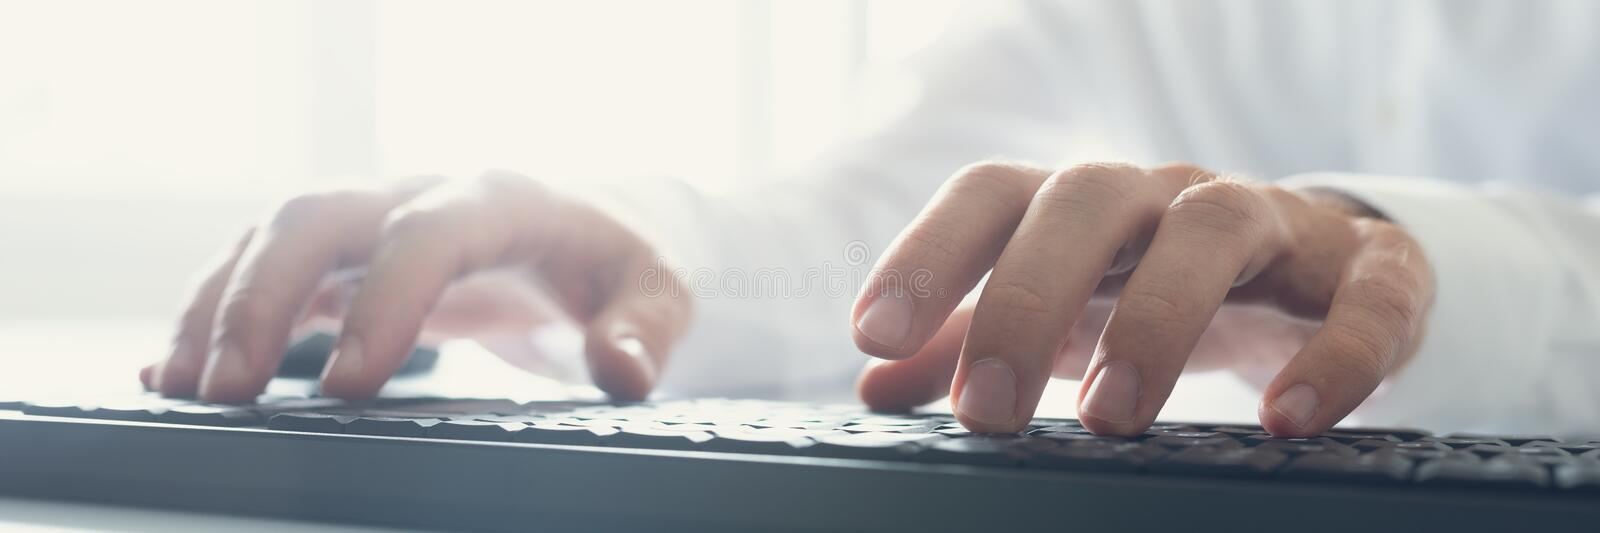 Wide view image of computer programmer typing royalty free stock photography